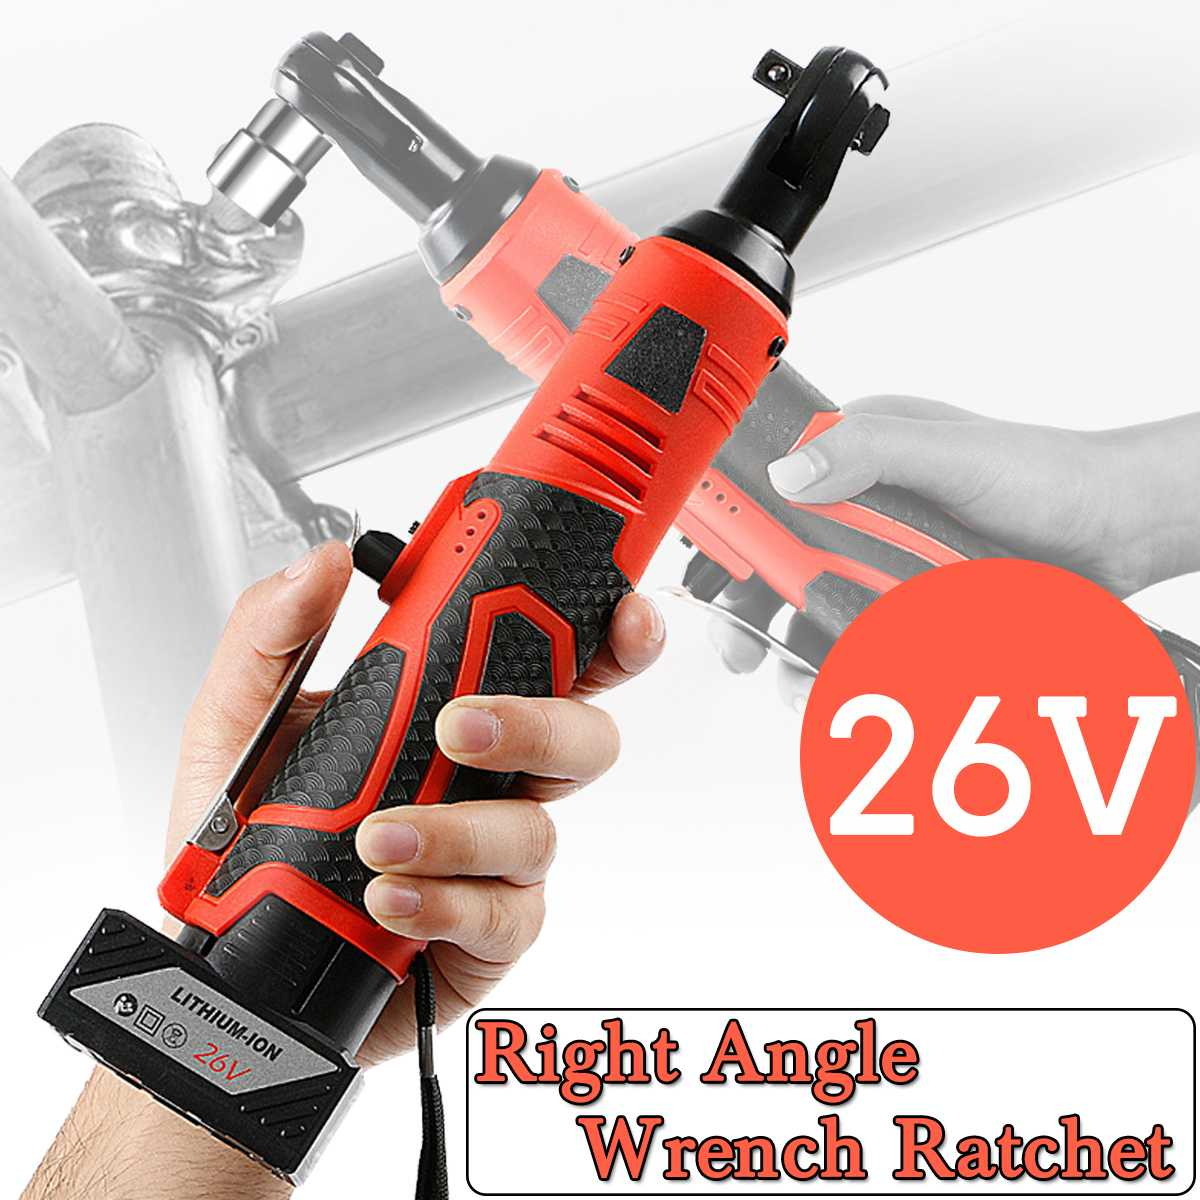 26V 3/8 Inch Electric Ratchet Wrench Cordless Electric Wrench Lithium Battery Right Angle Wrench with Led Light Car Repair Tool26V 3/8 Inch Electric Ratchet Wrench Cordless Electric Wrench Lithium Battery Right Angle Wrench with Led Light Car Repair Tool